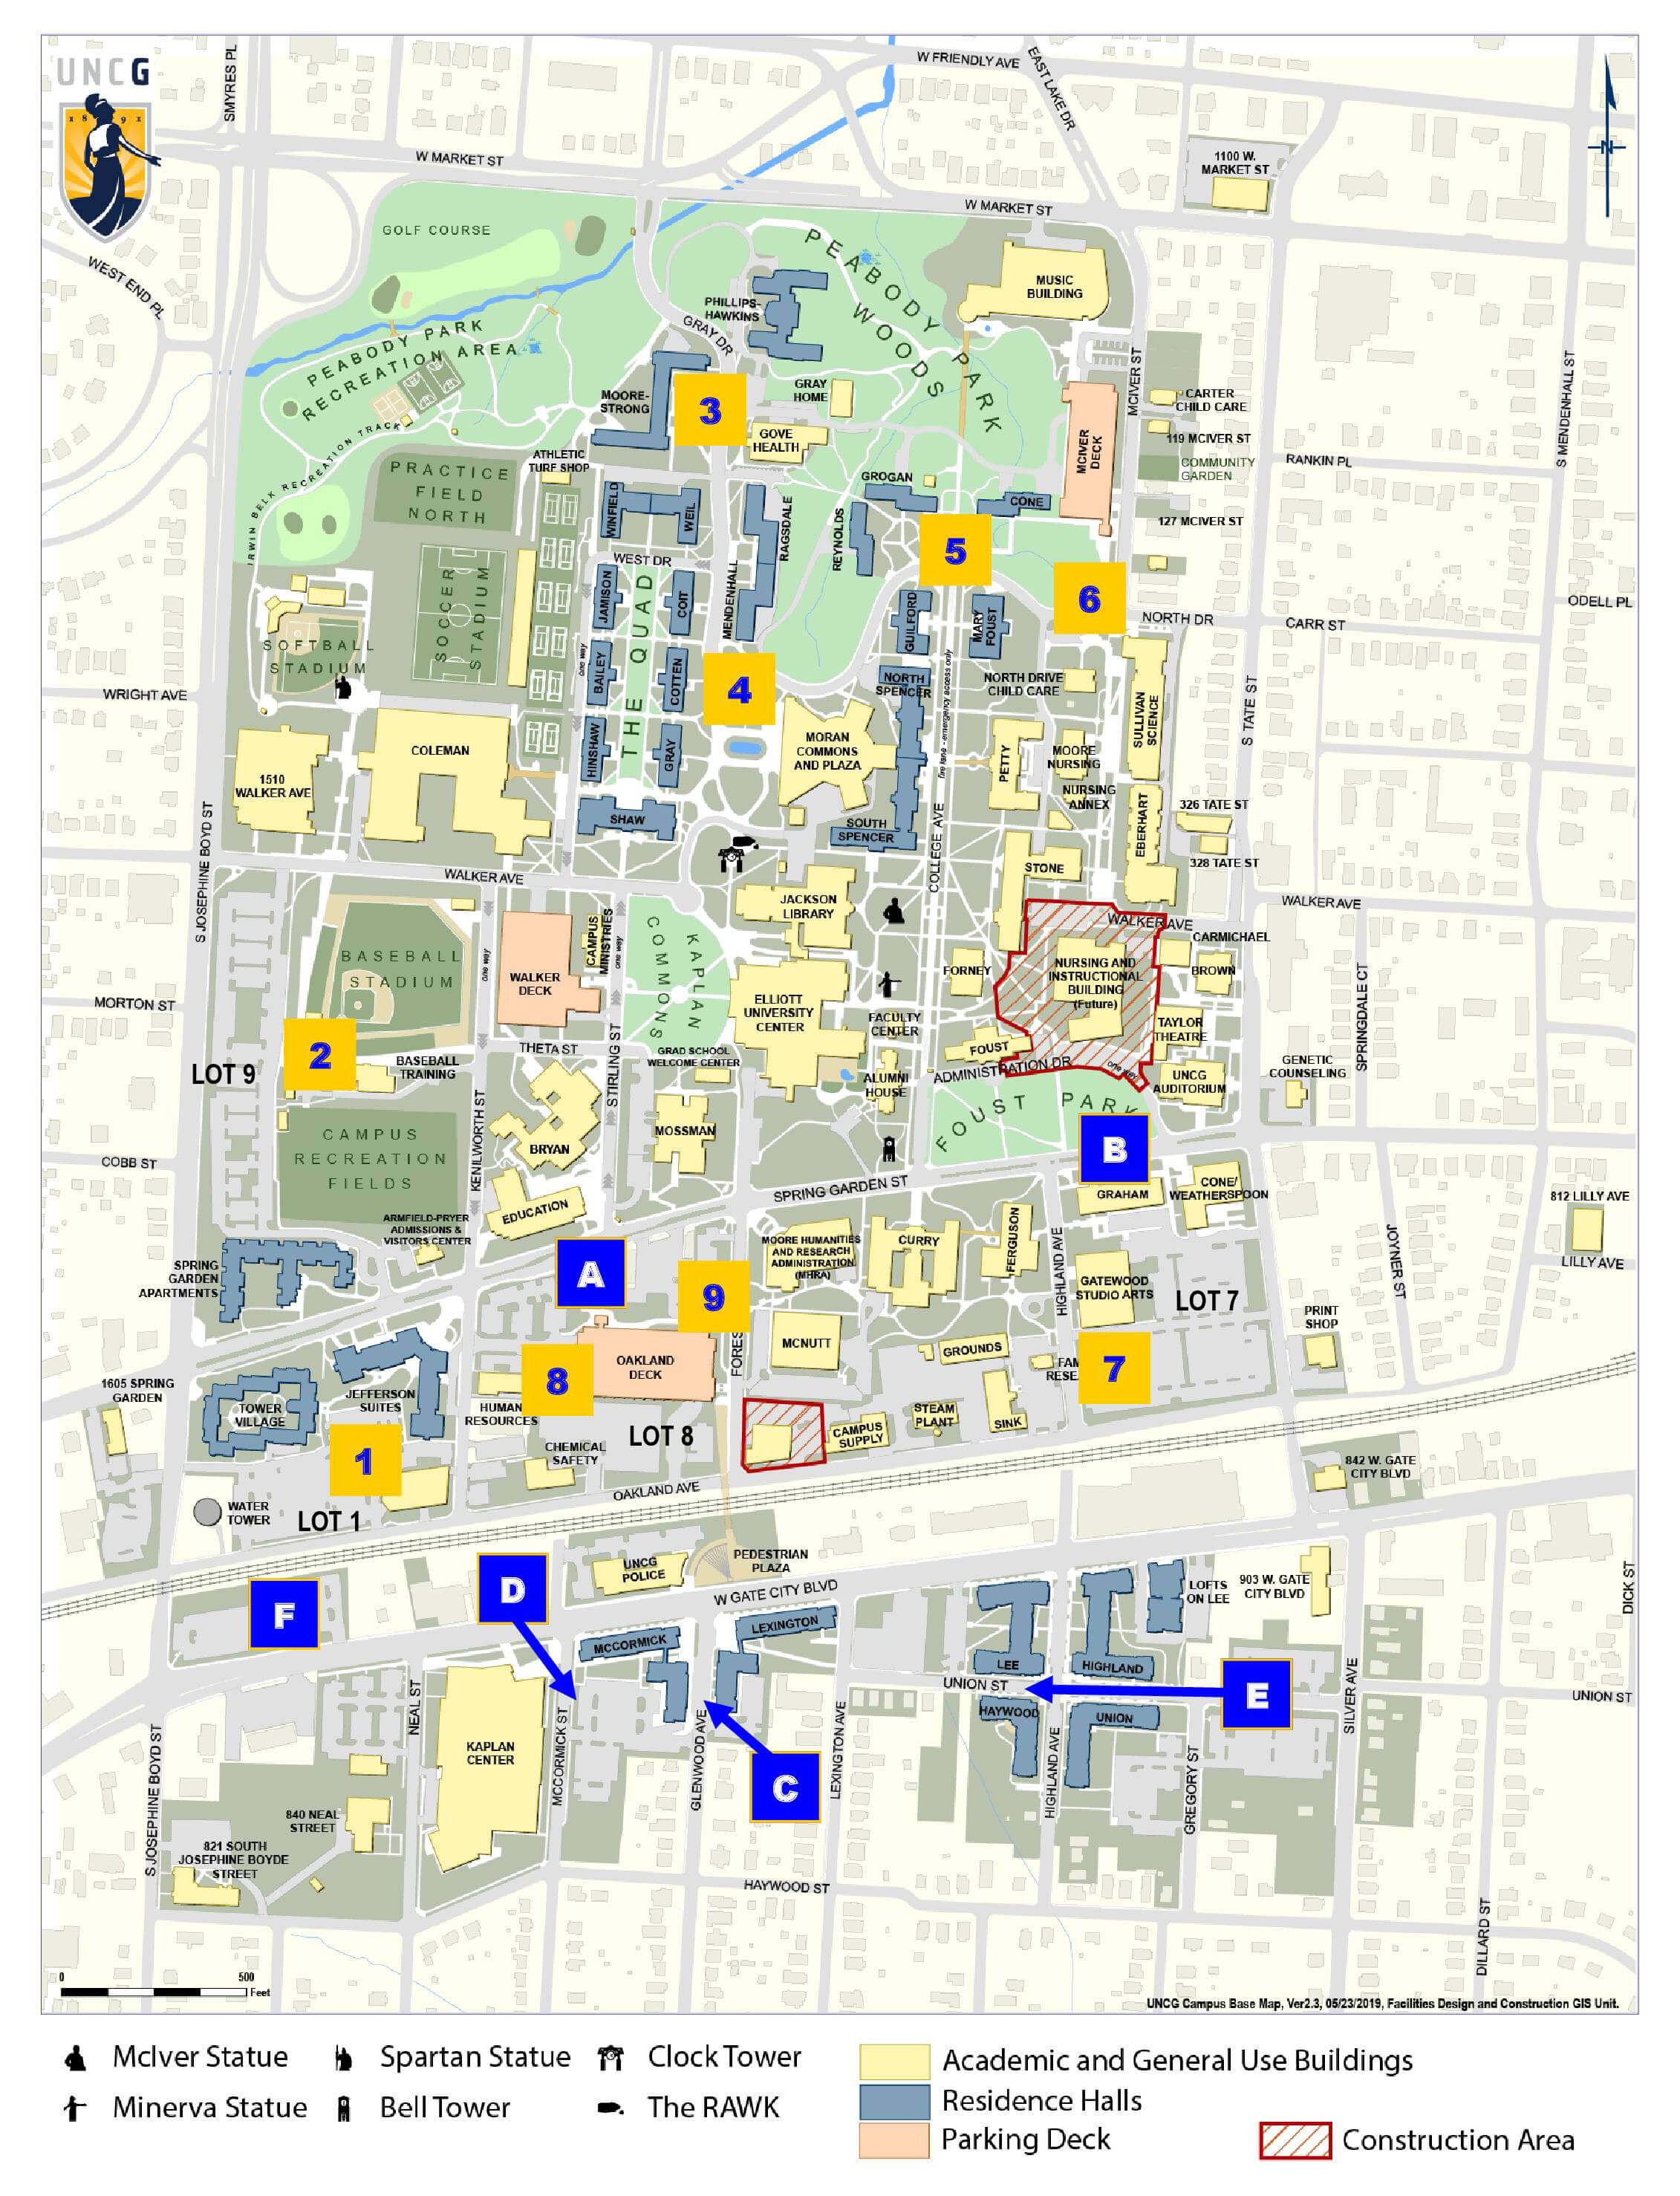 UNCG Fall Move-In Shuttle Map for Thursday (8/15) and Friday (8/16)